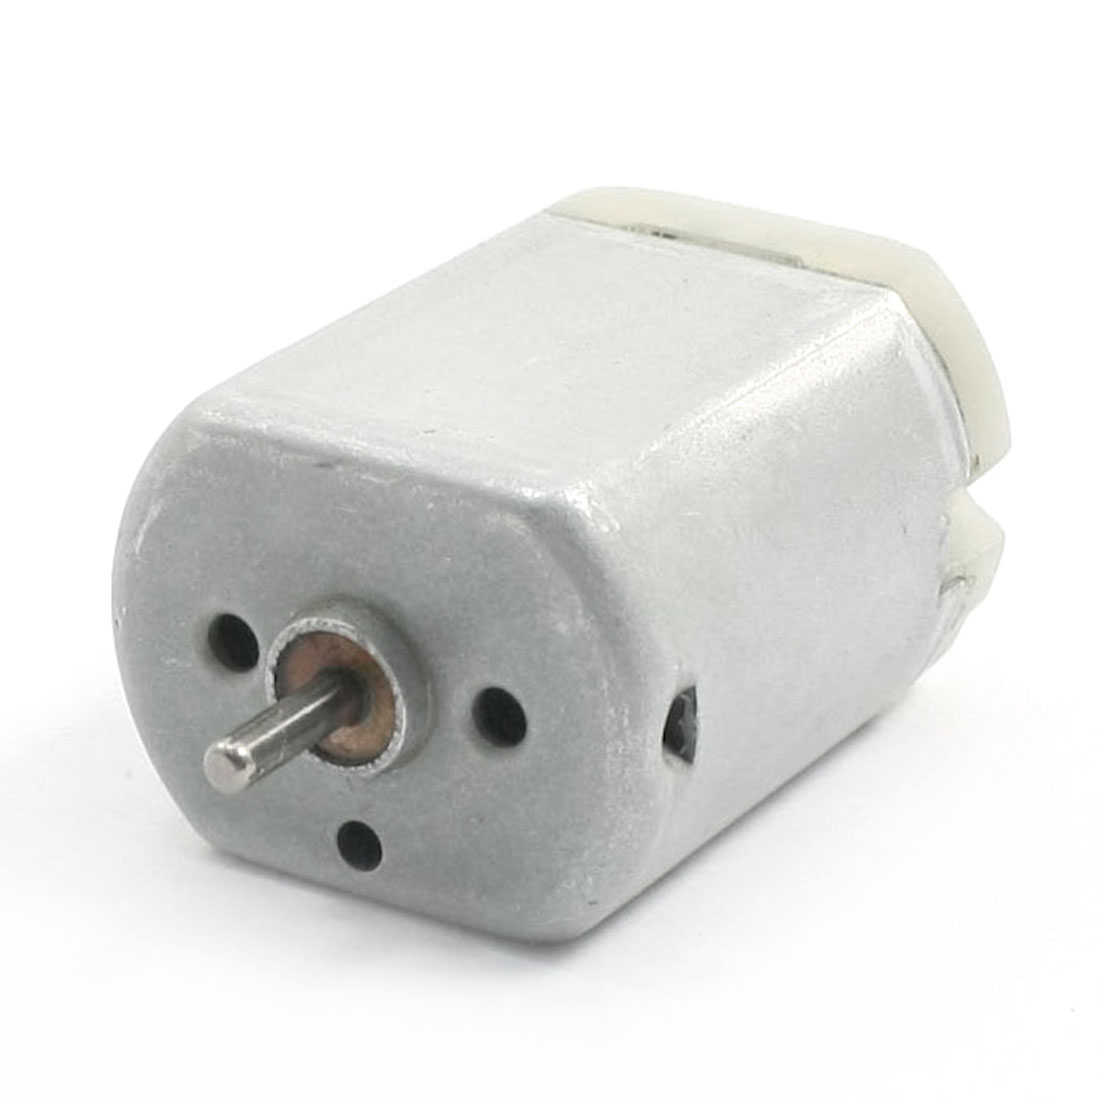 FC280-PC-11090R-Min-2mm-Shaft-DC-12V-High-Torque-Mini-Micro-Motor